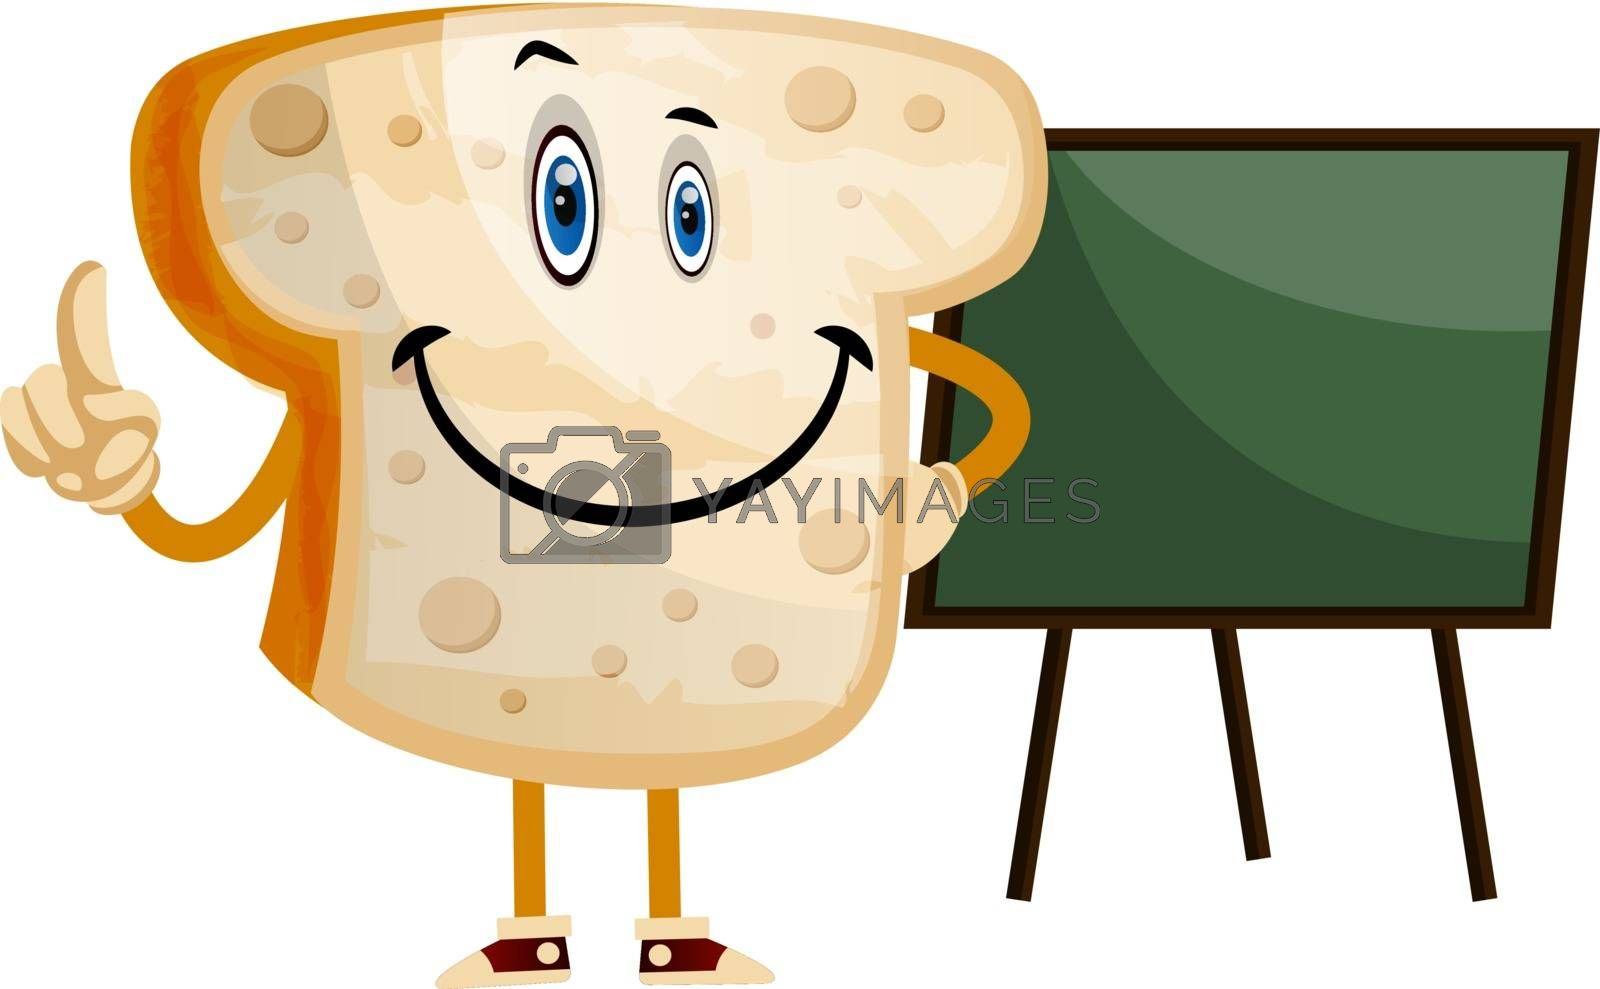 Royalty free image of Blackboard Bread illustration vector on white background by Morphart